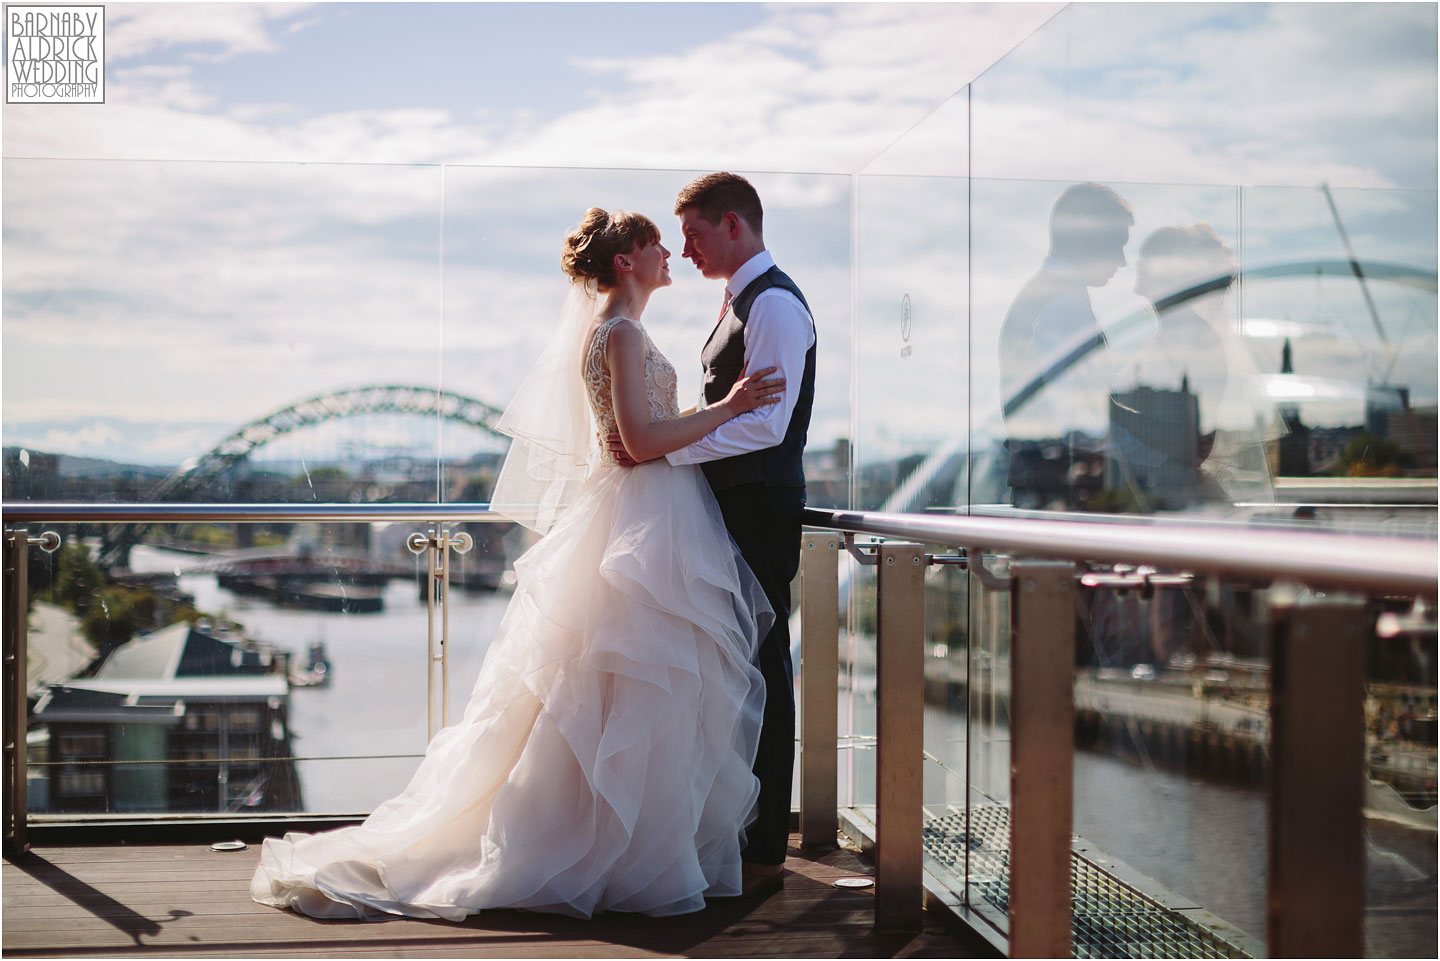 The Baltic Newcastle Wedding Photography, The Baltic Gallery Wedding photographer, Baltic Centre for Contemporary Art Wedding, Gateshead Quays Wedding, Six Restaurant Wedding Newcastle